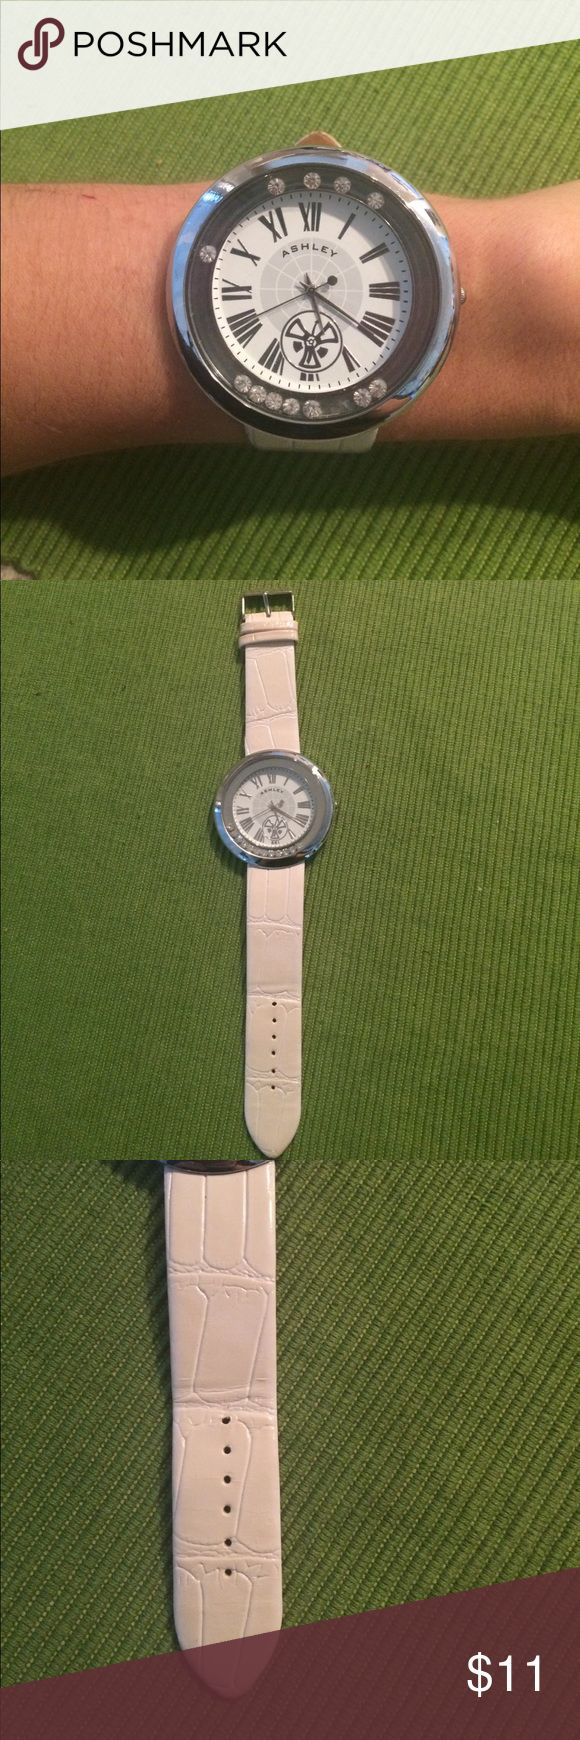 """Large Face Watch w/white patent band Face = 2in diameter Wristband width = 7/8 of an inch. Band is patent white with Textured pattern. Crystals """"swirl"""" around watch face with movement of wrist. Roman numerals. Stainless steel back. **needs battery** excellent Condition Accessories Watches"""